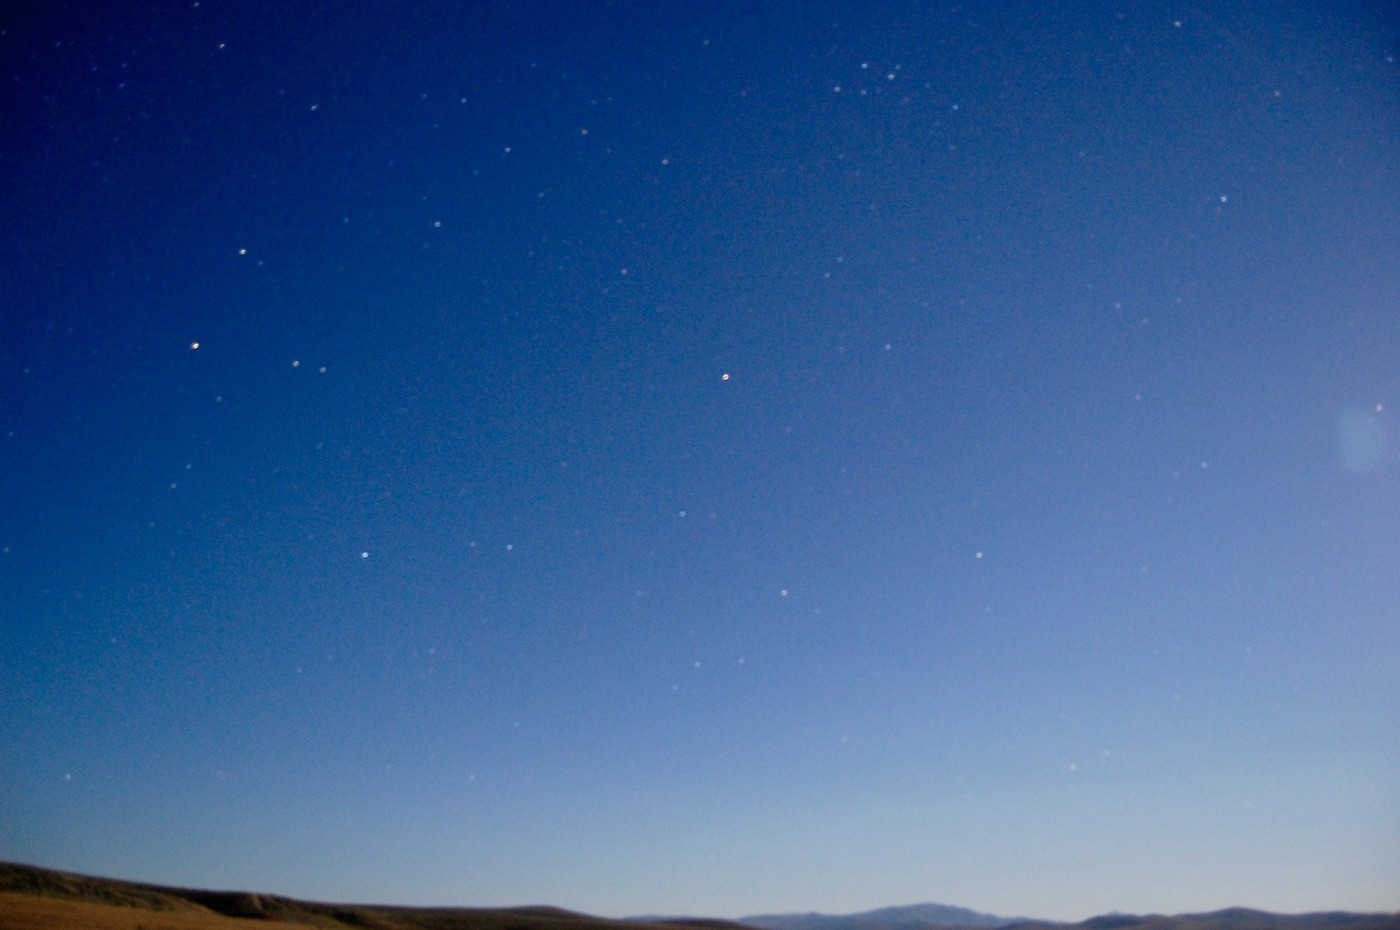 A photo of the blue Oregon summer sky with some stars.